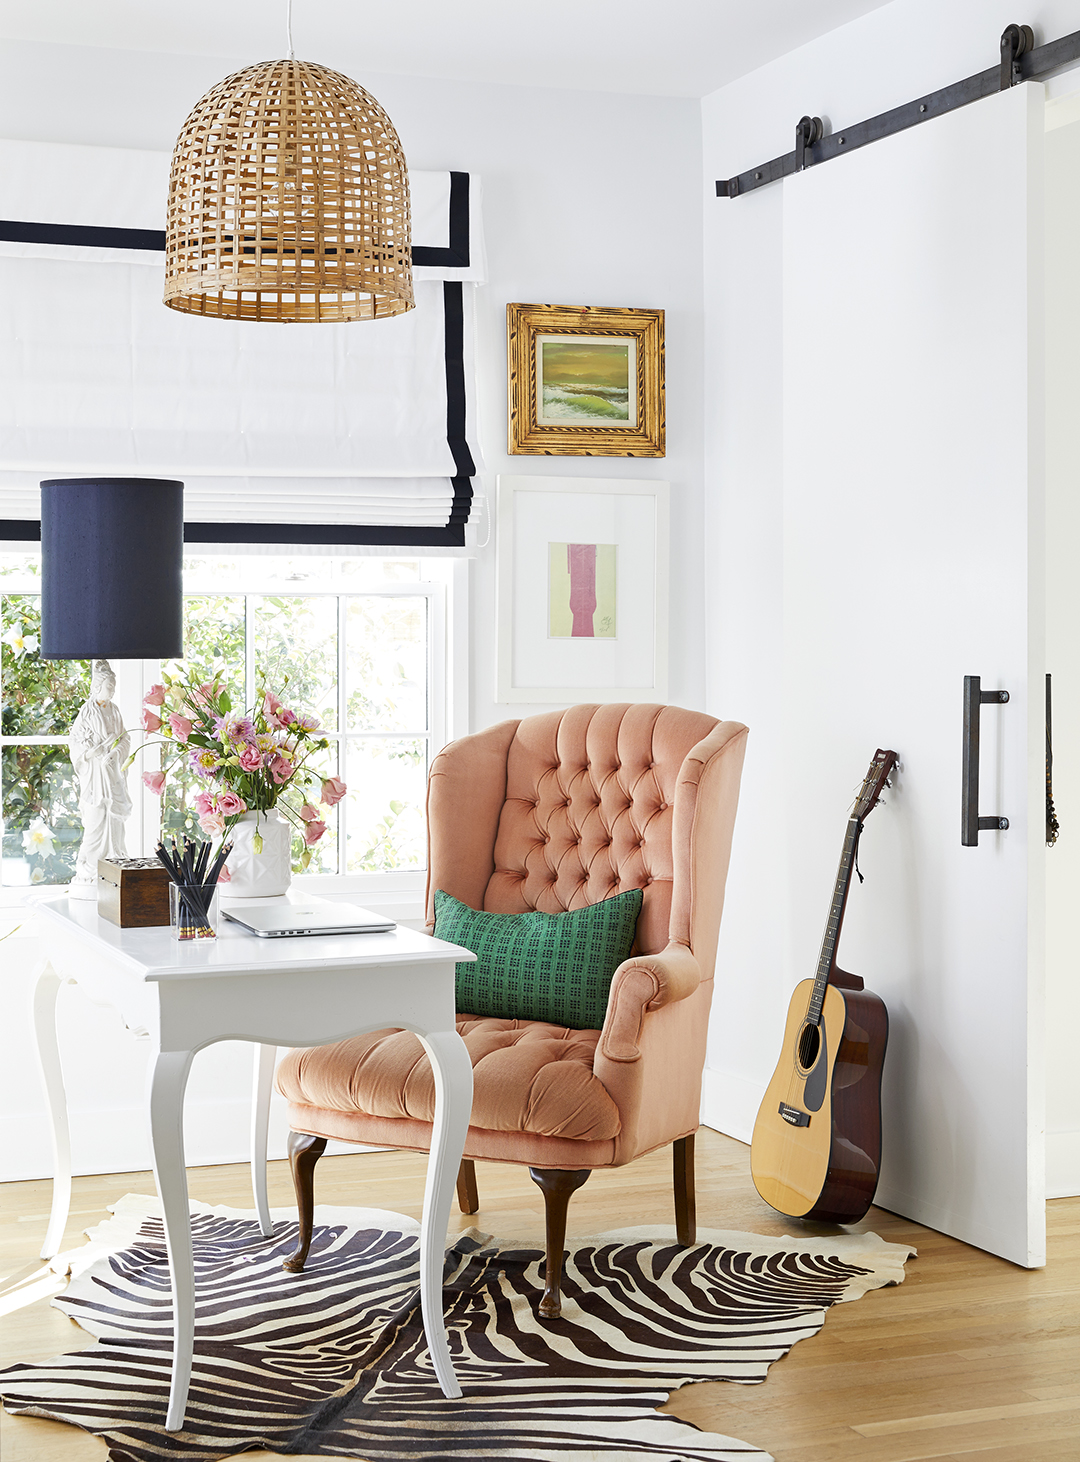 wing chair in sitting area